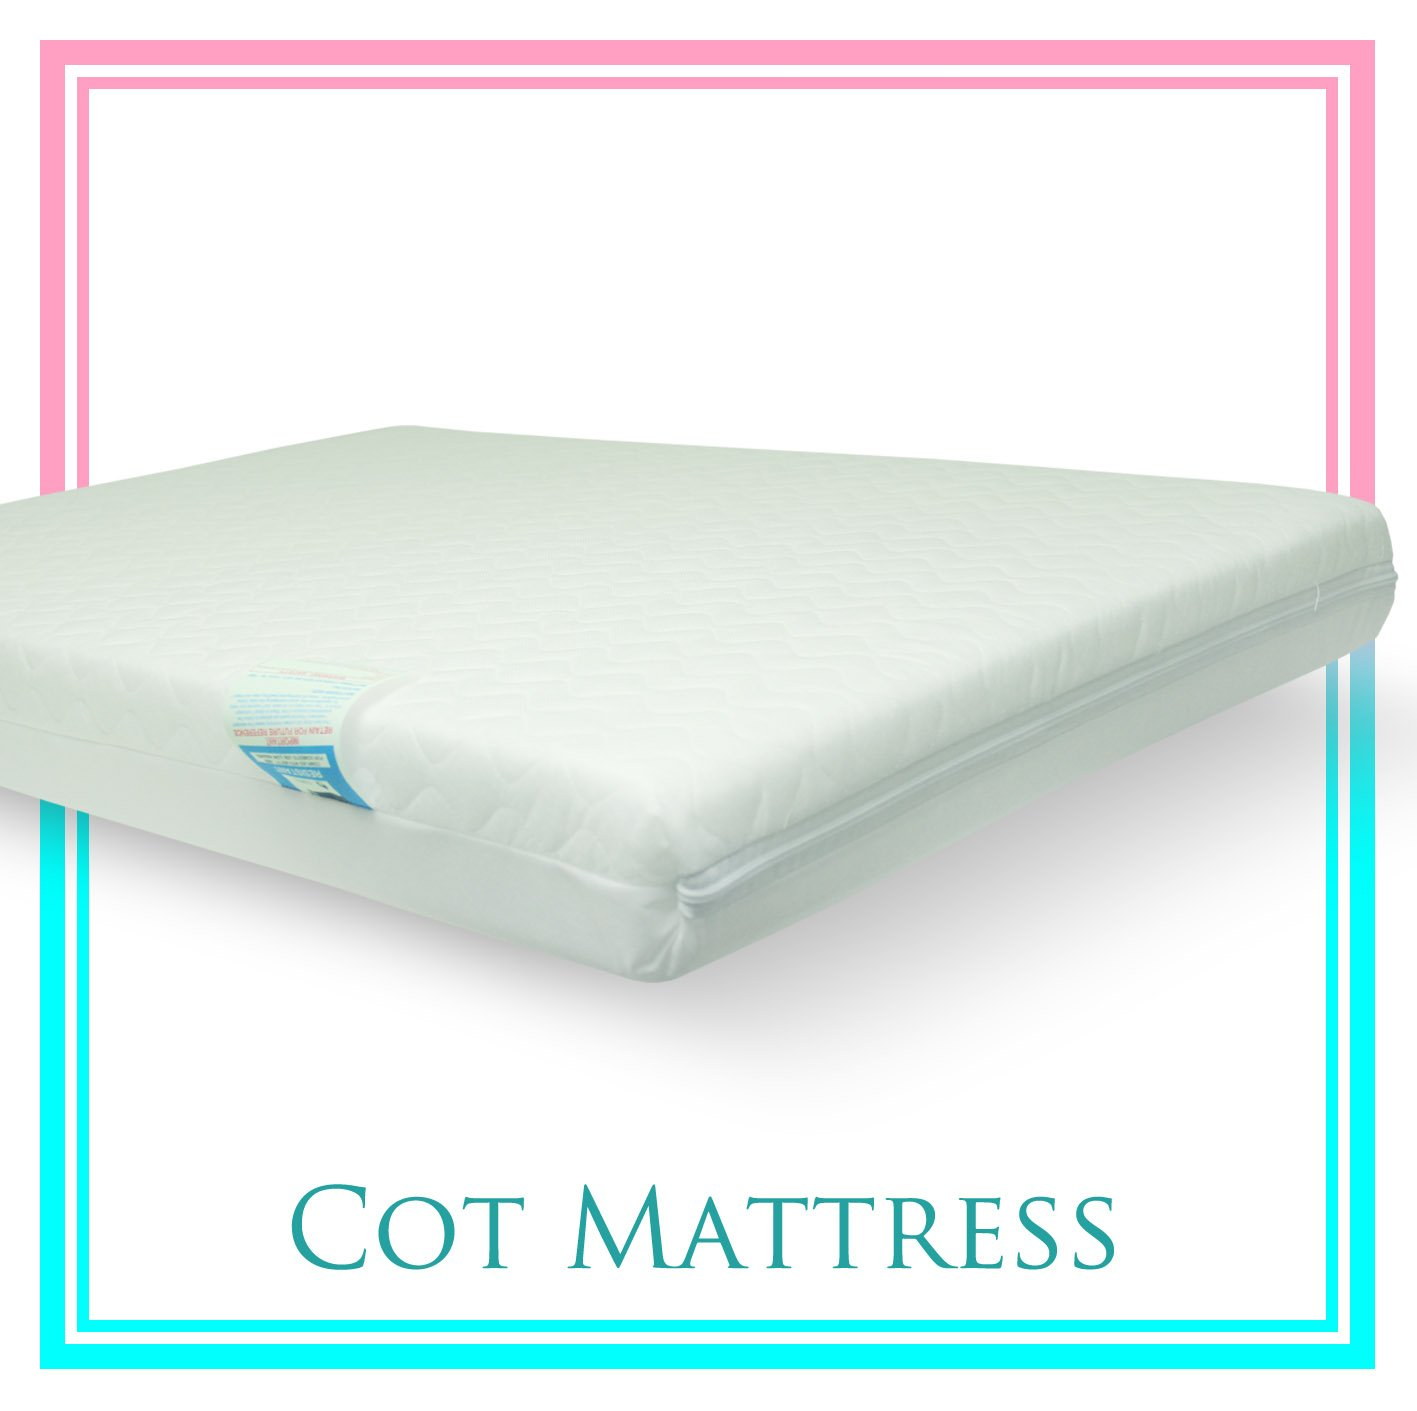 Baby Travel Cot Mattress 95 x 65 x 10 CM QUILTED Breathable Antiallergenic - UK Made - ATM-Baby Brand TOPSTYLE COLLECTION